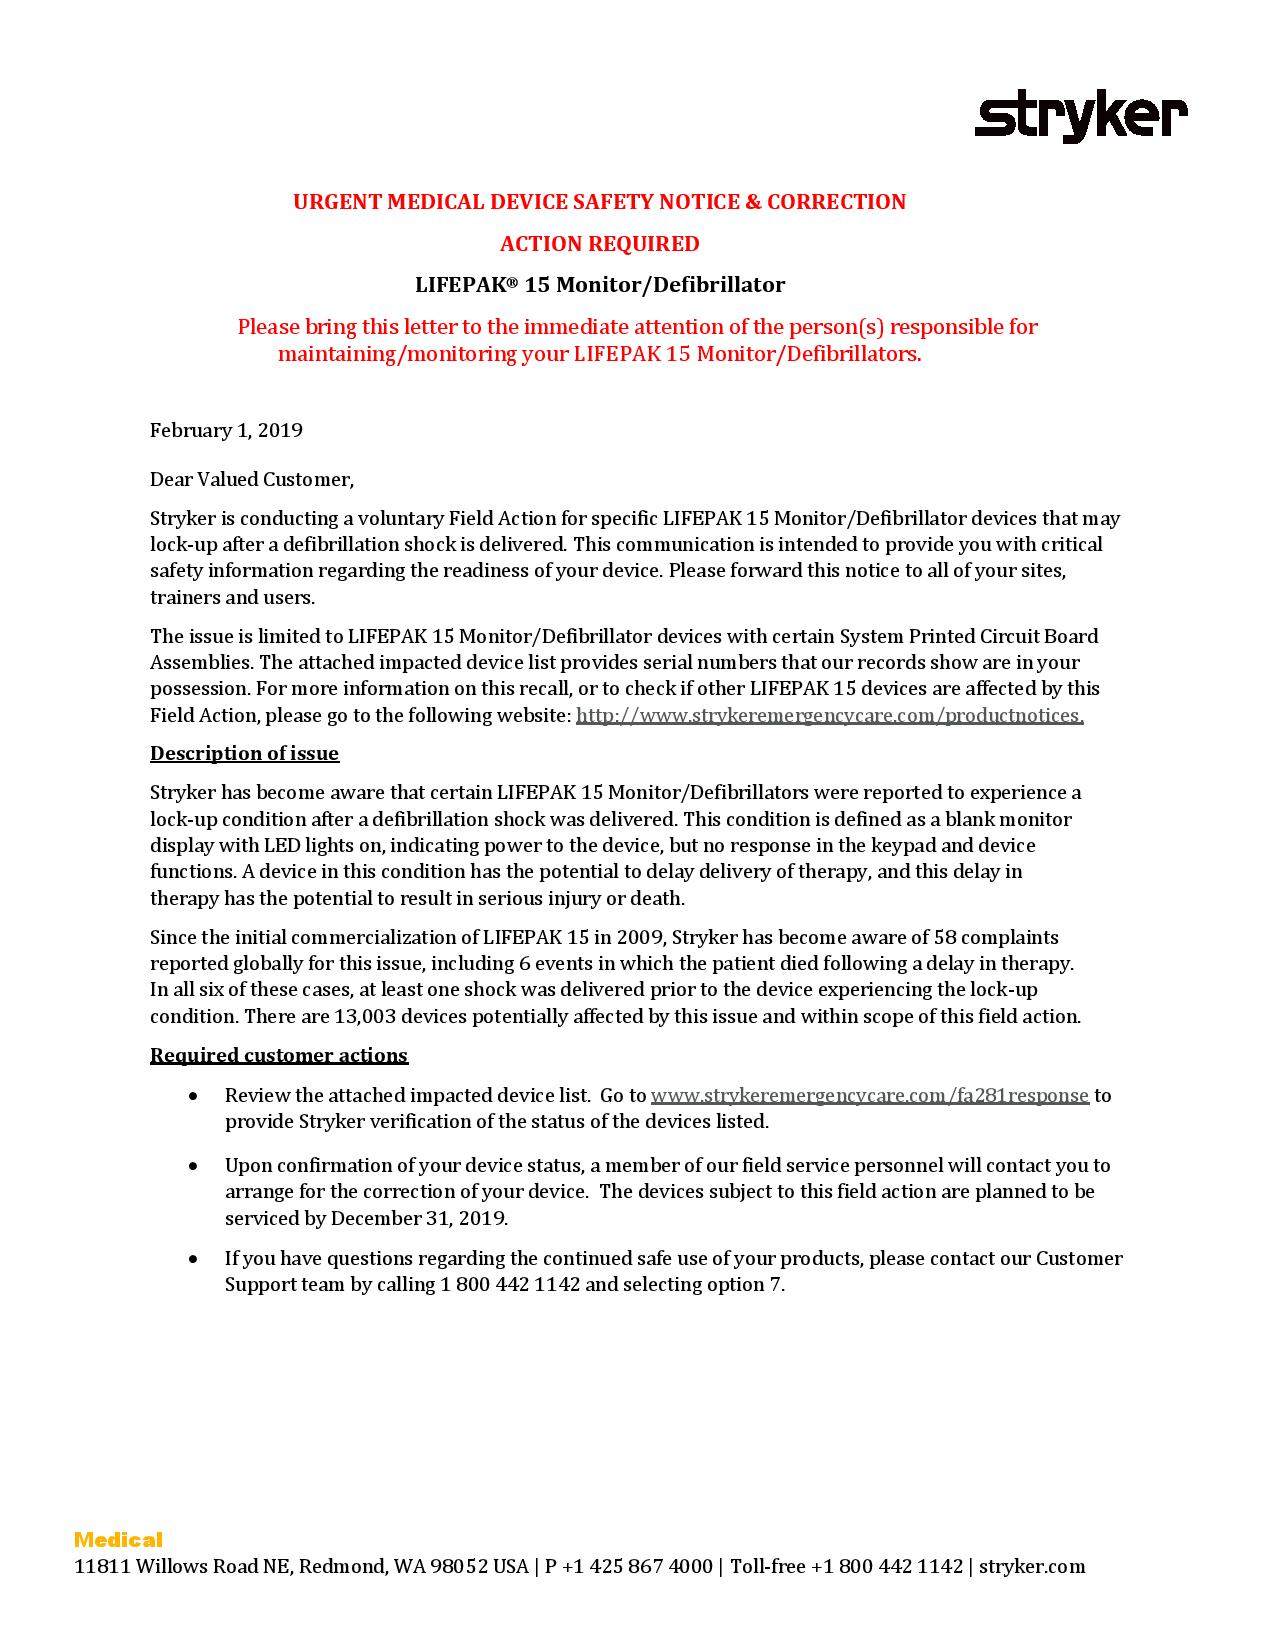 Stryker LifePak 15 Urgent Medical Device Safety Notice 2119-page-001.jpg